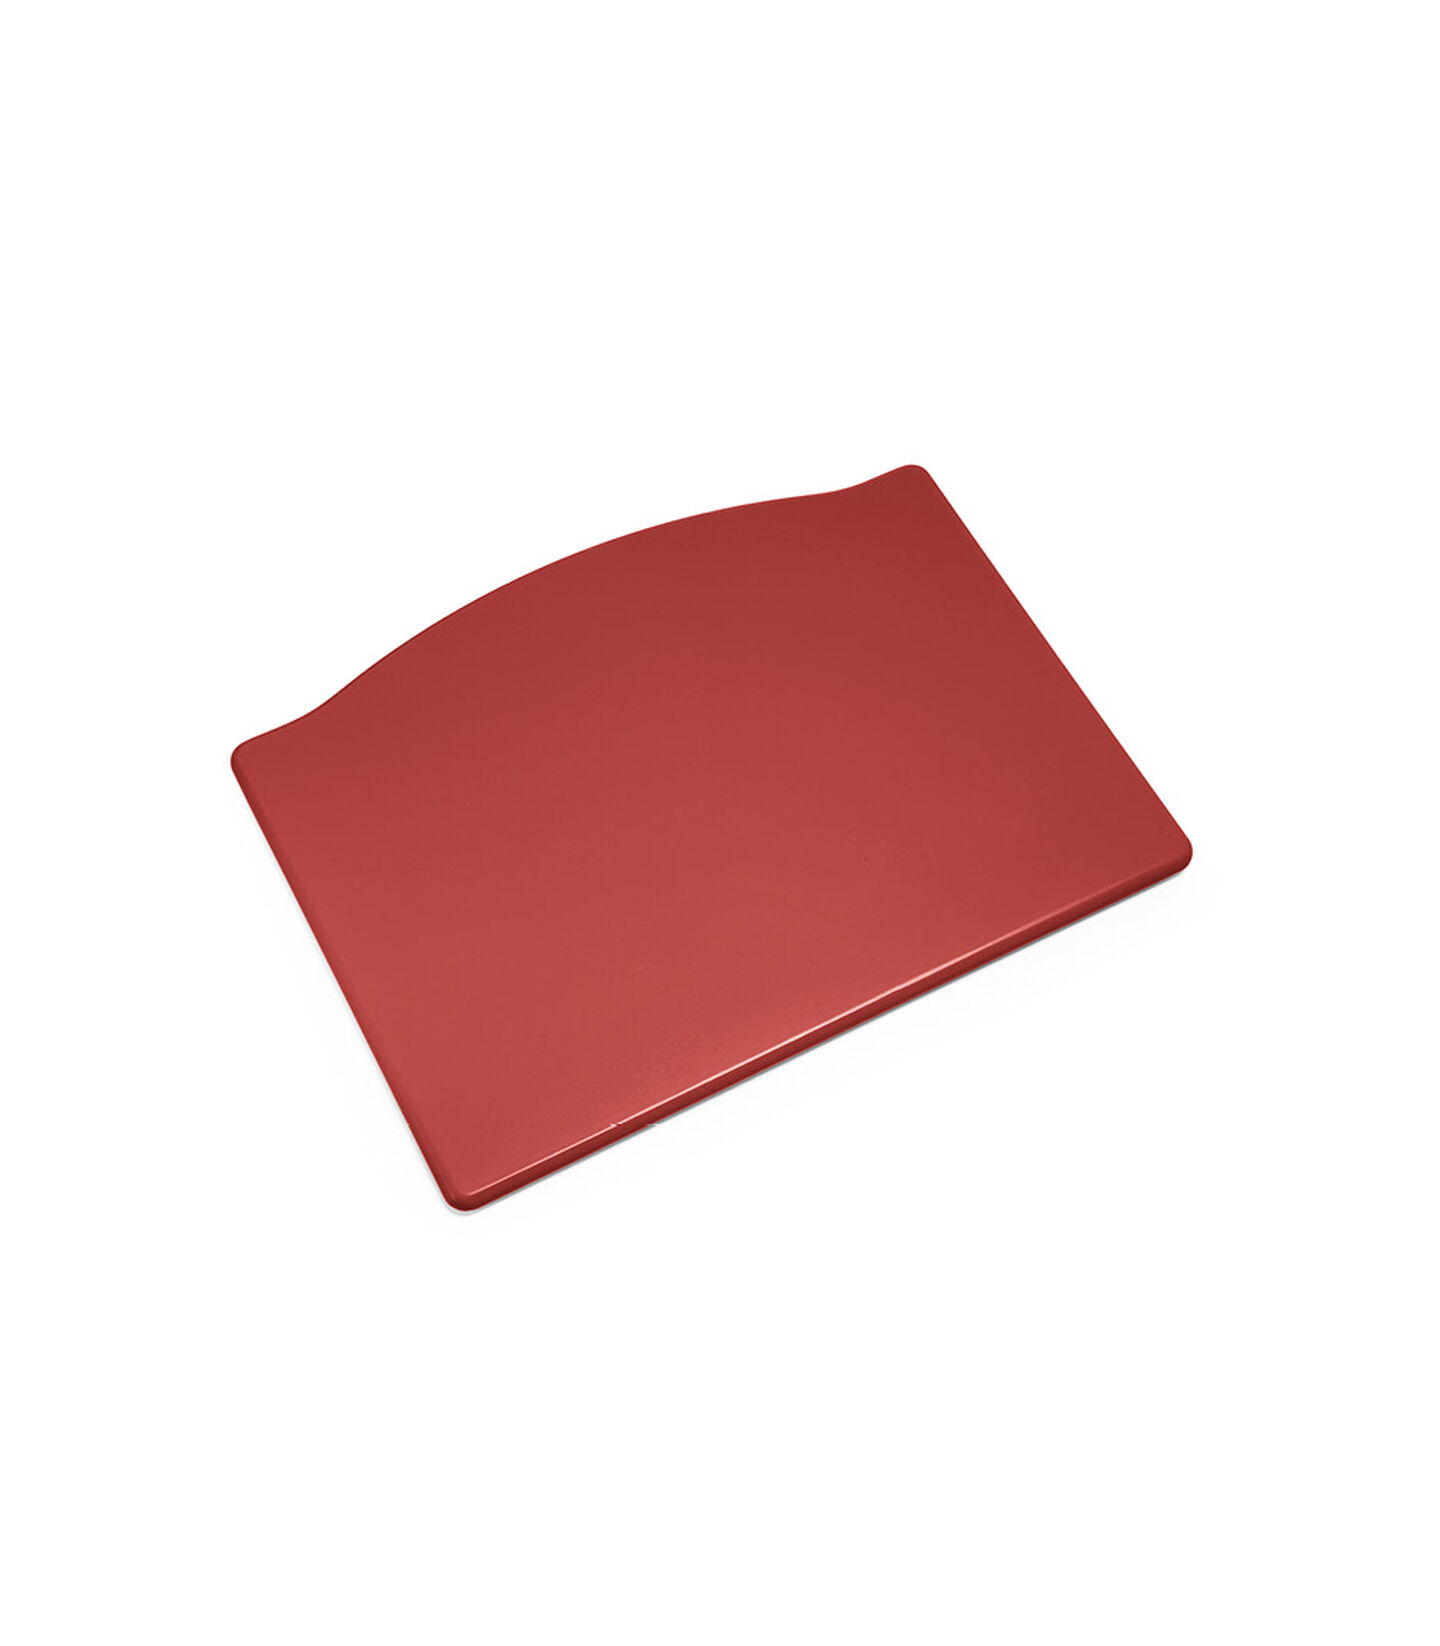 Tripp Trapp® Fodplade Warm red, Warm Red, mainview view 1